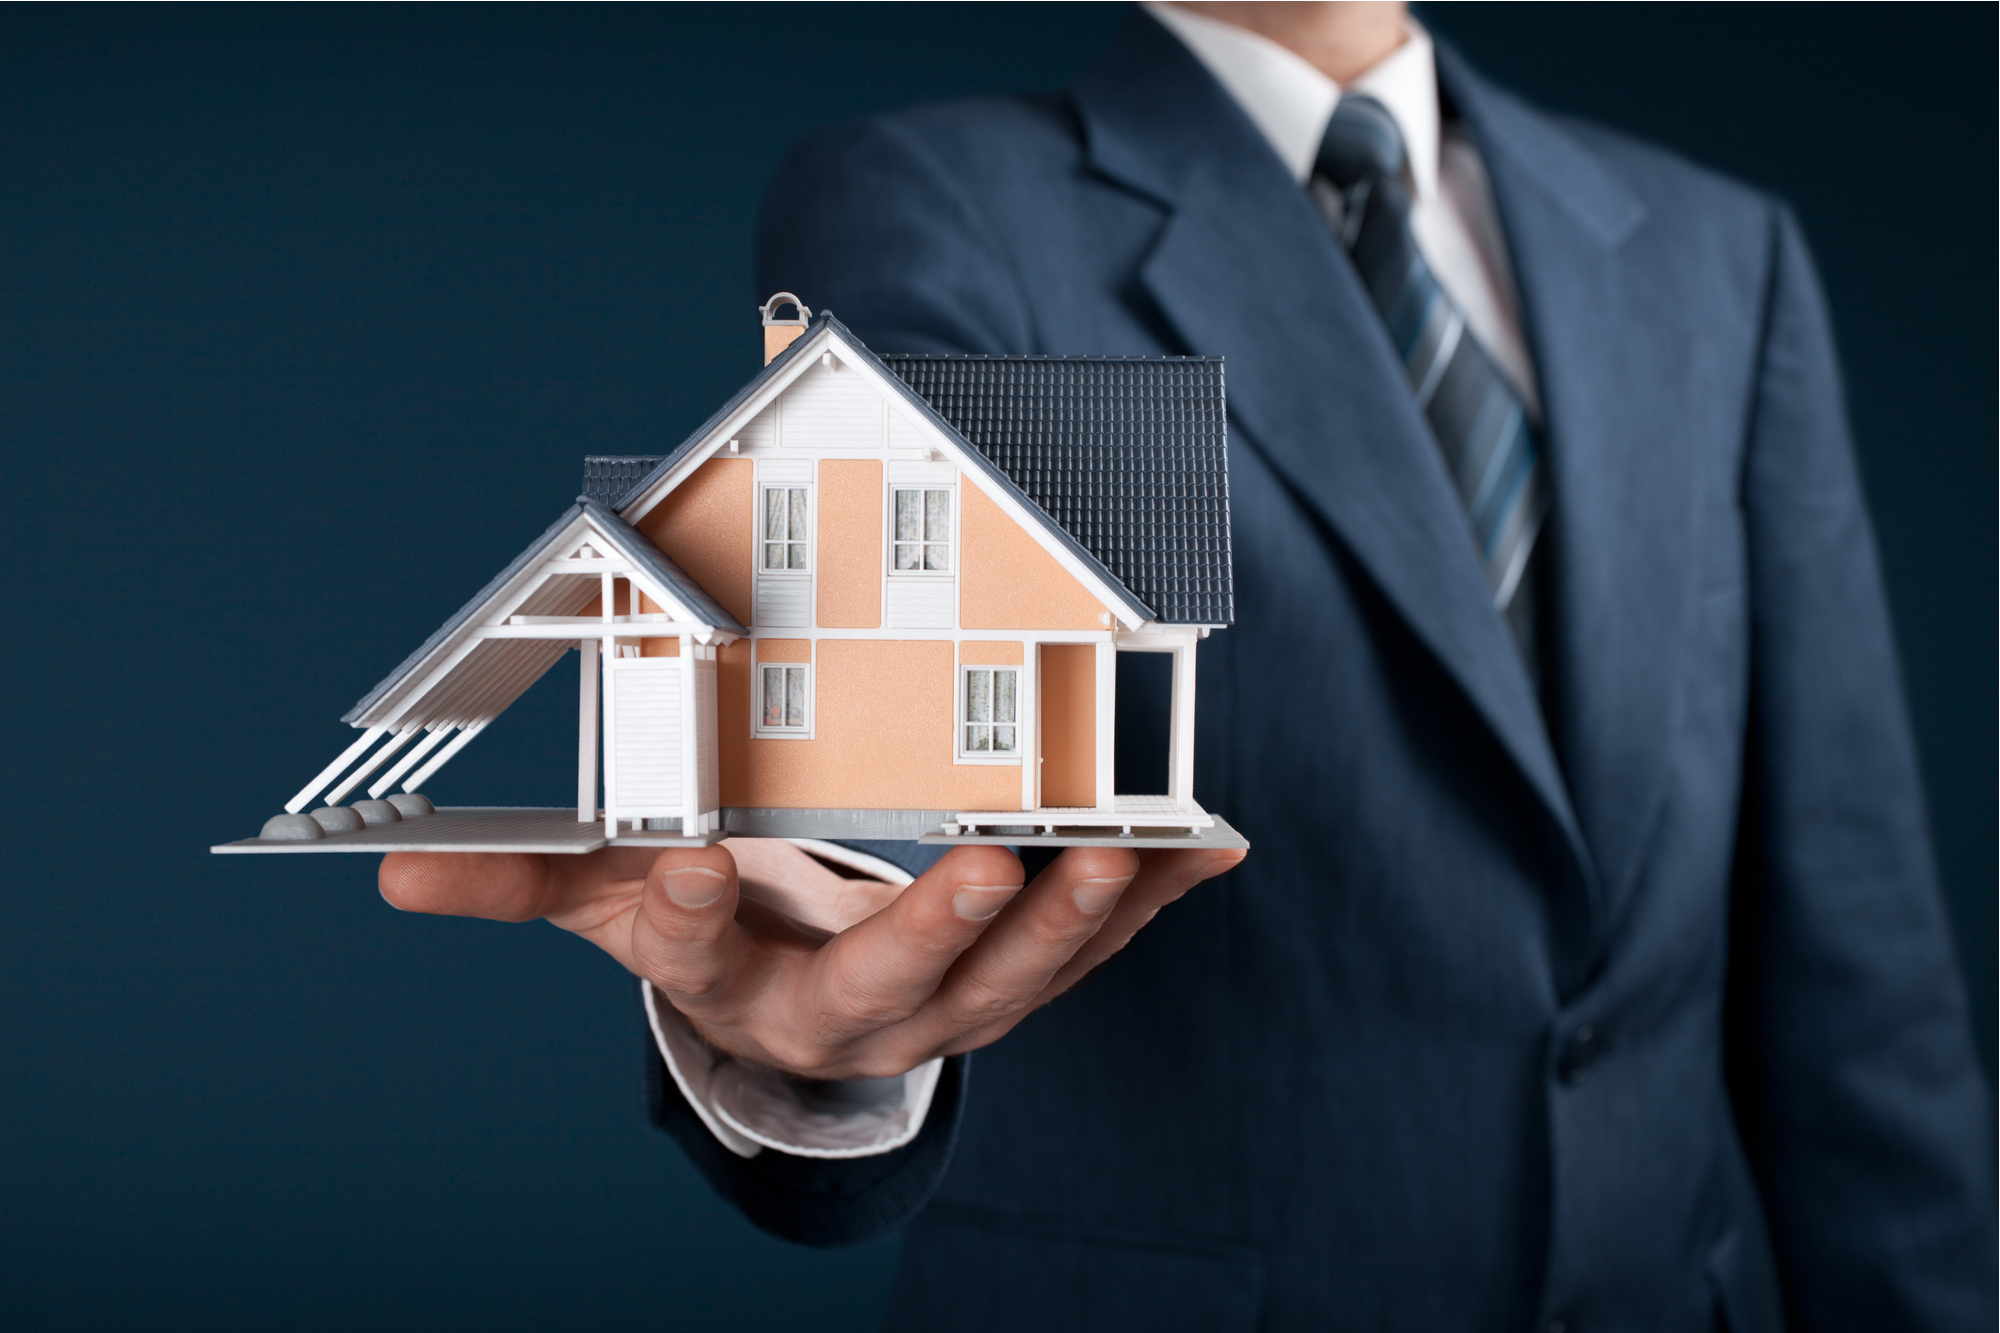 Various Things That Effects on Your Property's Value